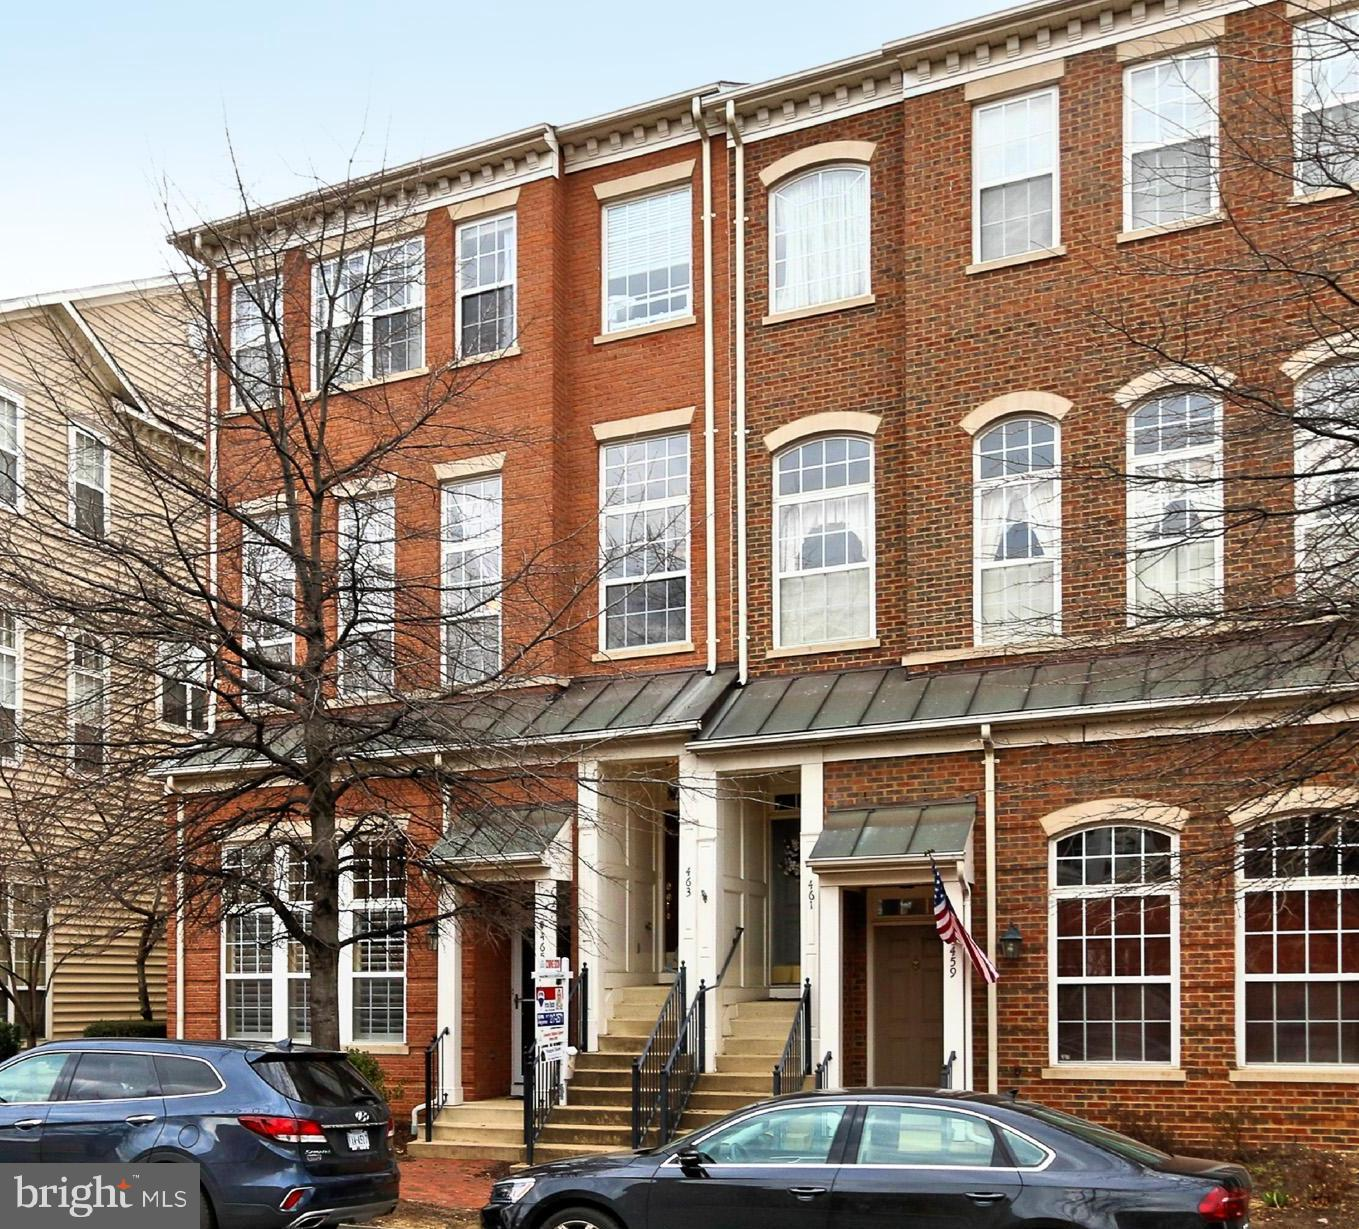 Sun filled end unit ARLINGTON model featuring hardwoods, NEW upgraded carpeting, fresh paints, NEW HVAC, NEW SS appliances, NEW granite countertops, gas cooking (!), custom mirror frames & light fixtures in baths, recently replaced DURADEK balcony. Spacious and open main level floor plan with split living/dining room. Windows galore for maximum light. One car garage & reserved parking.